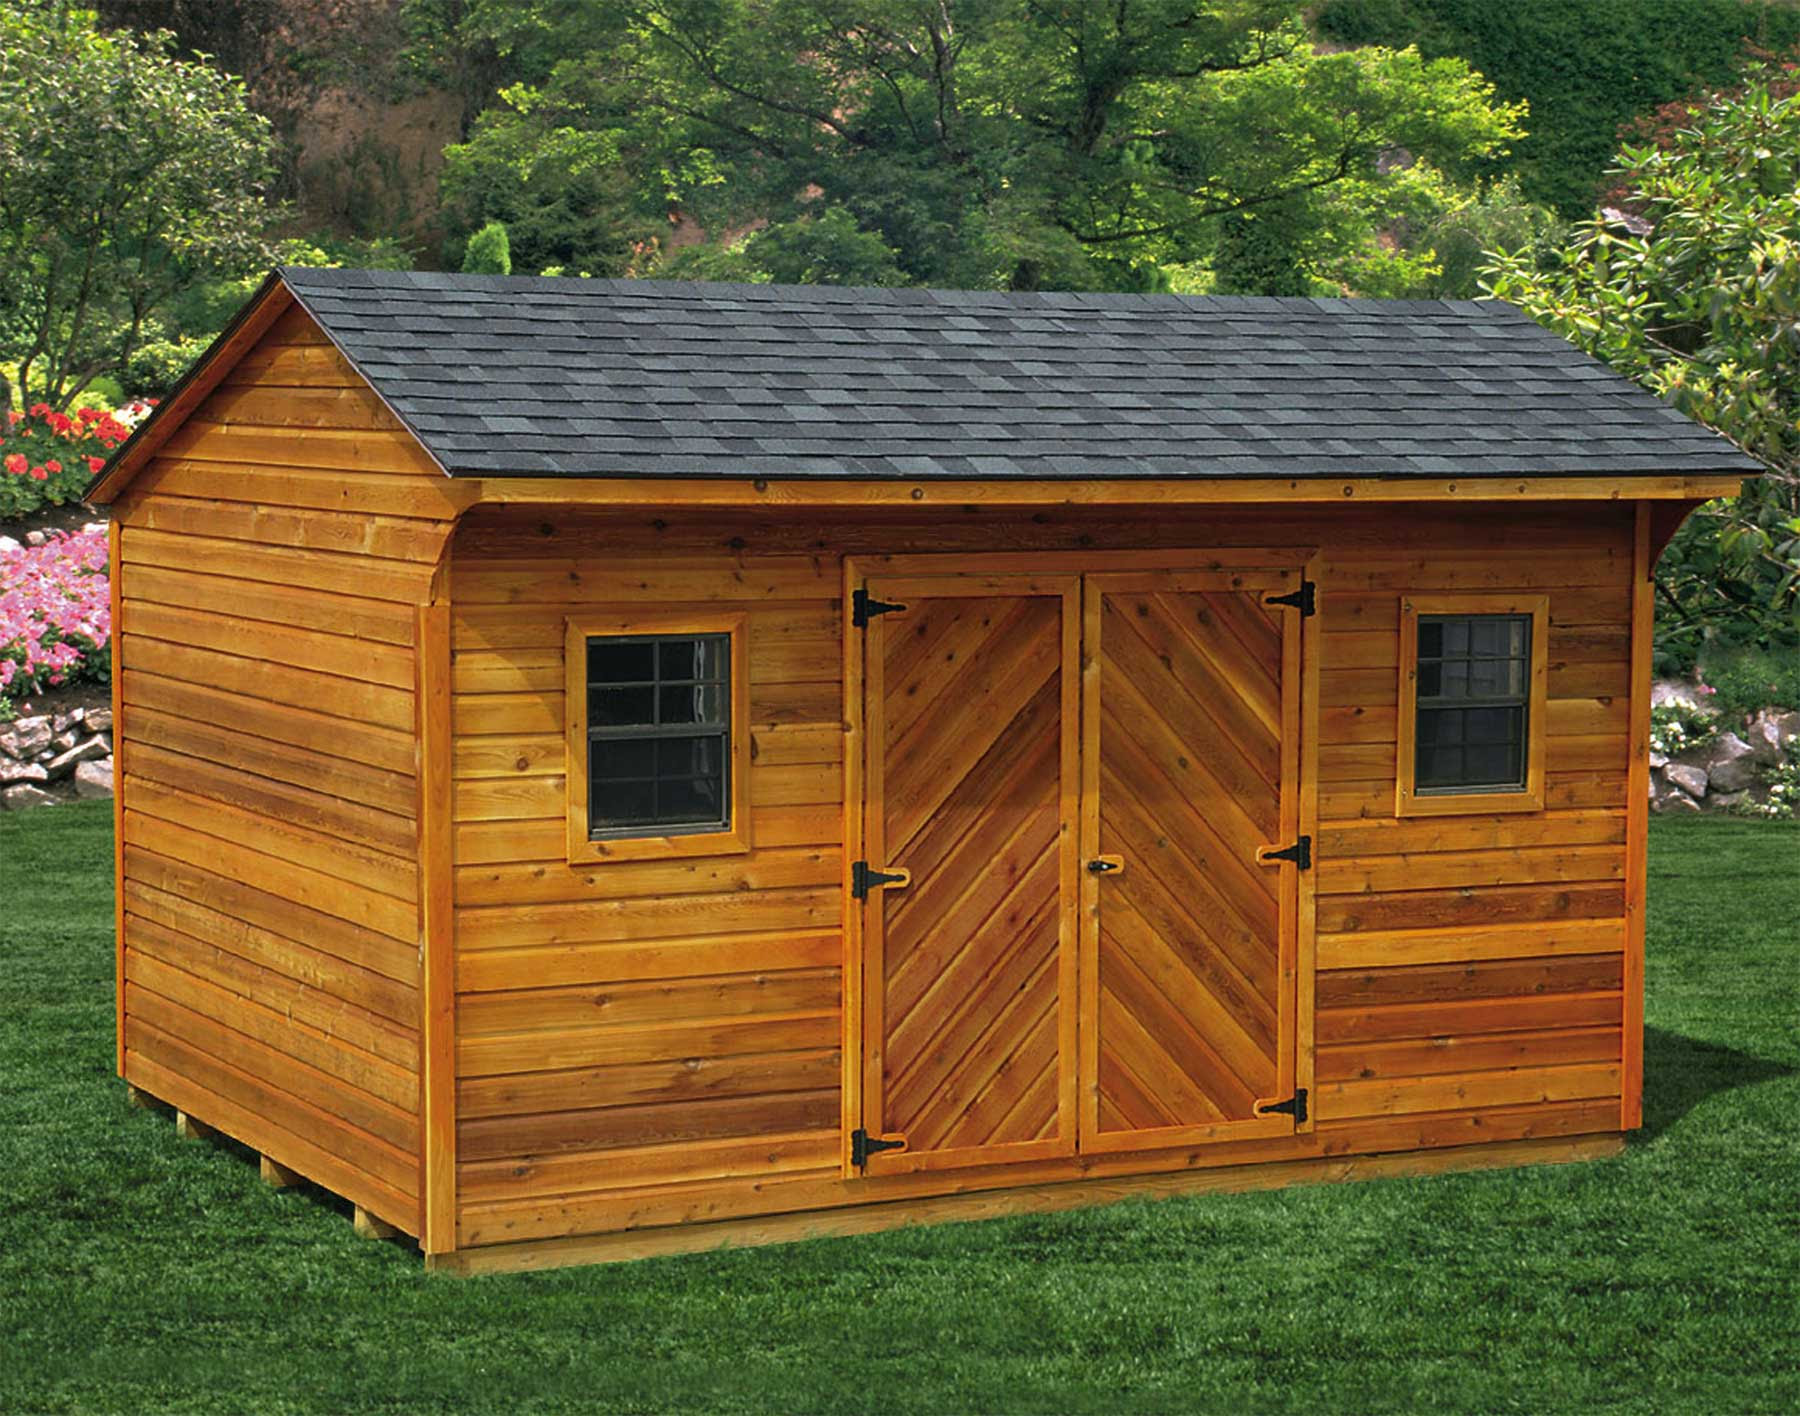 Yard Storage Sheds Creativity pixelmari